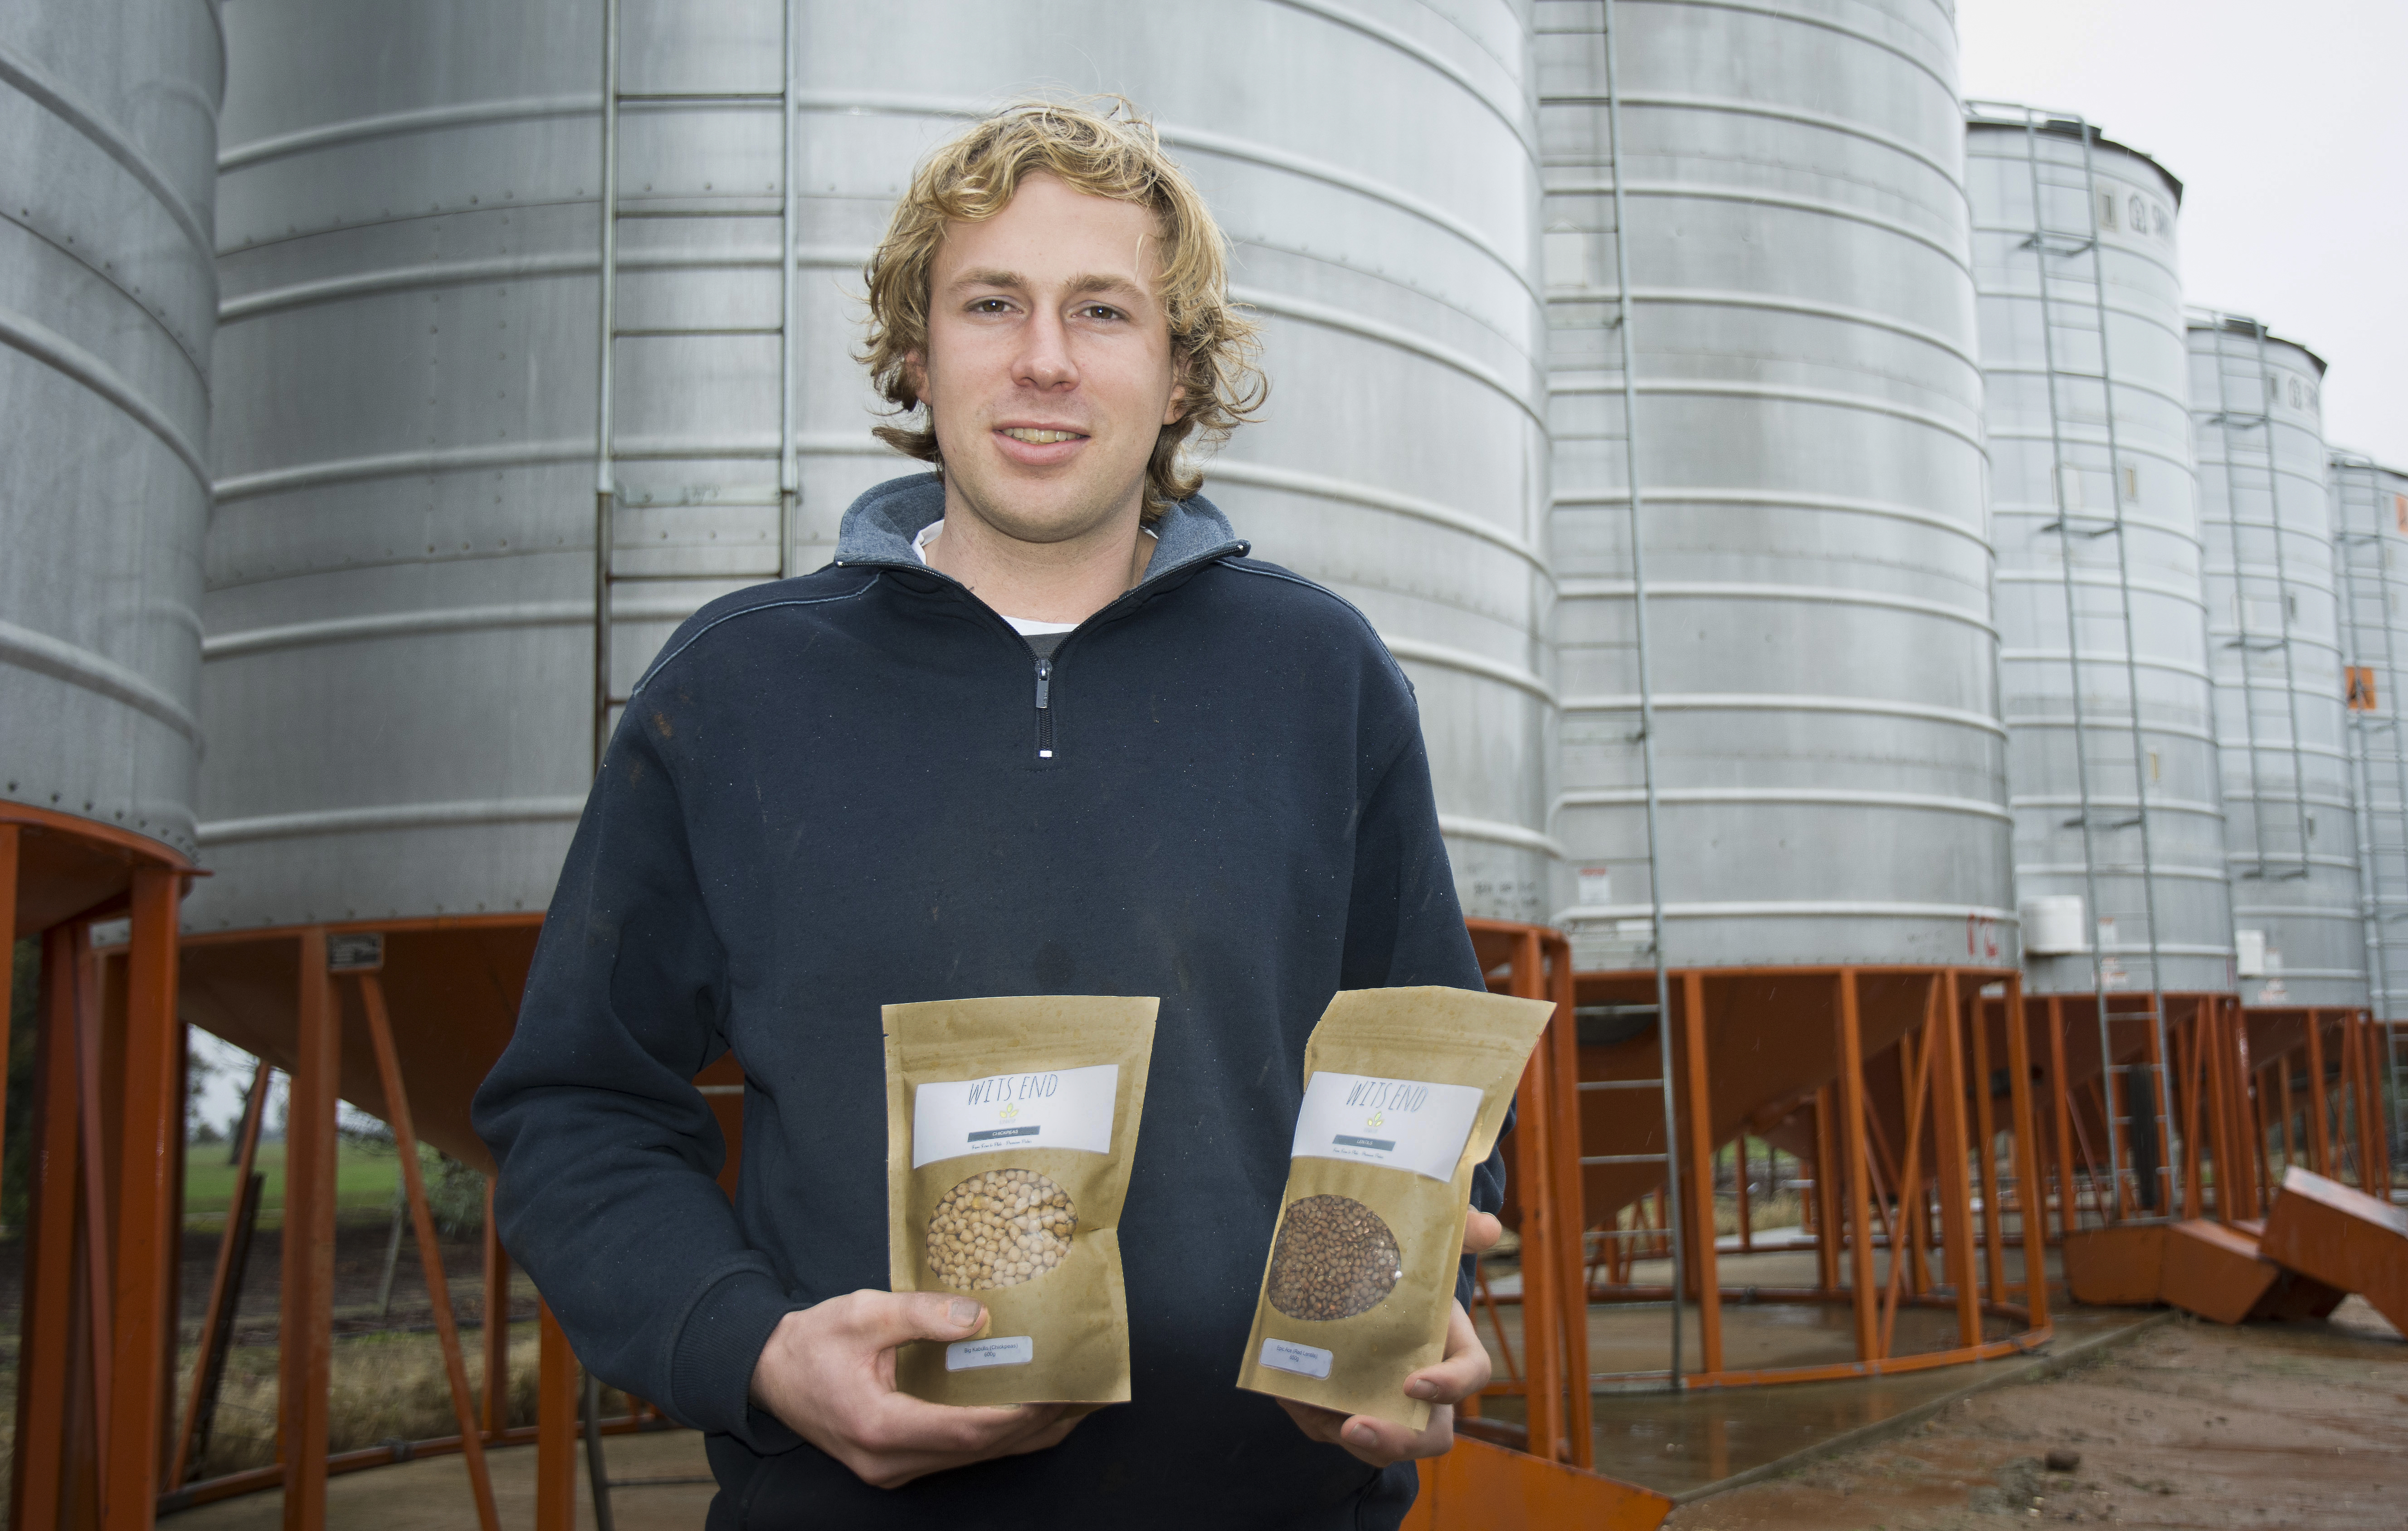 Photo of Scott Niewand, holding bags of his Wits End pulses